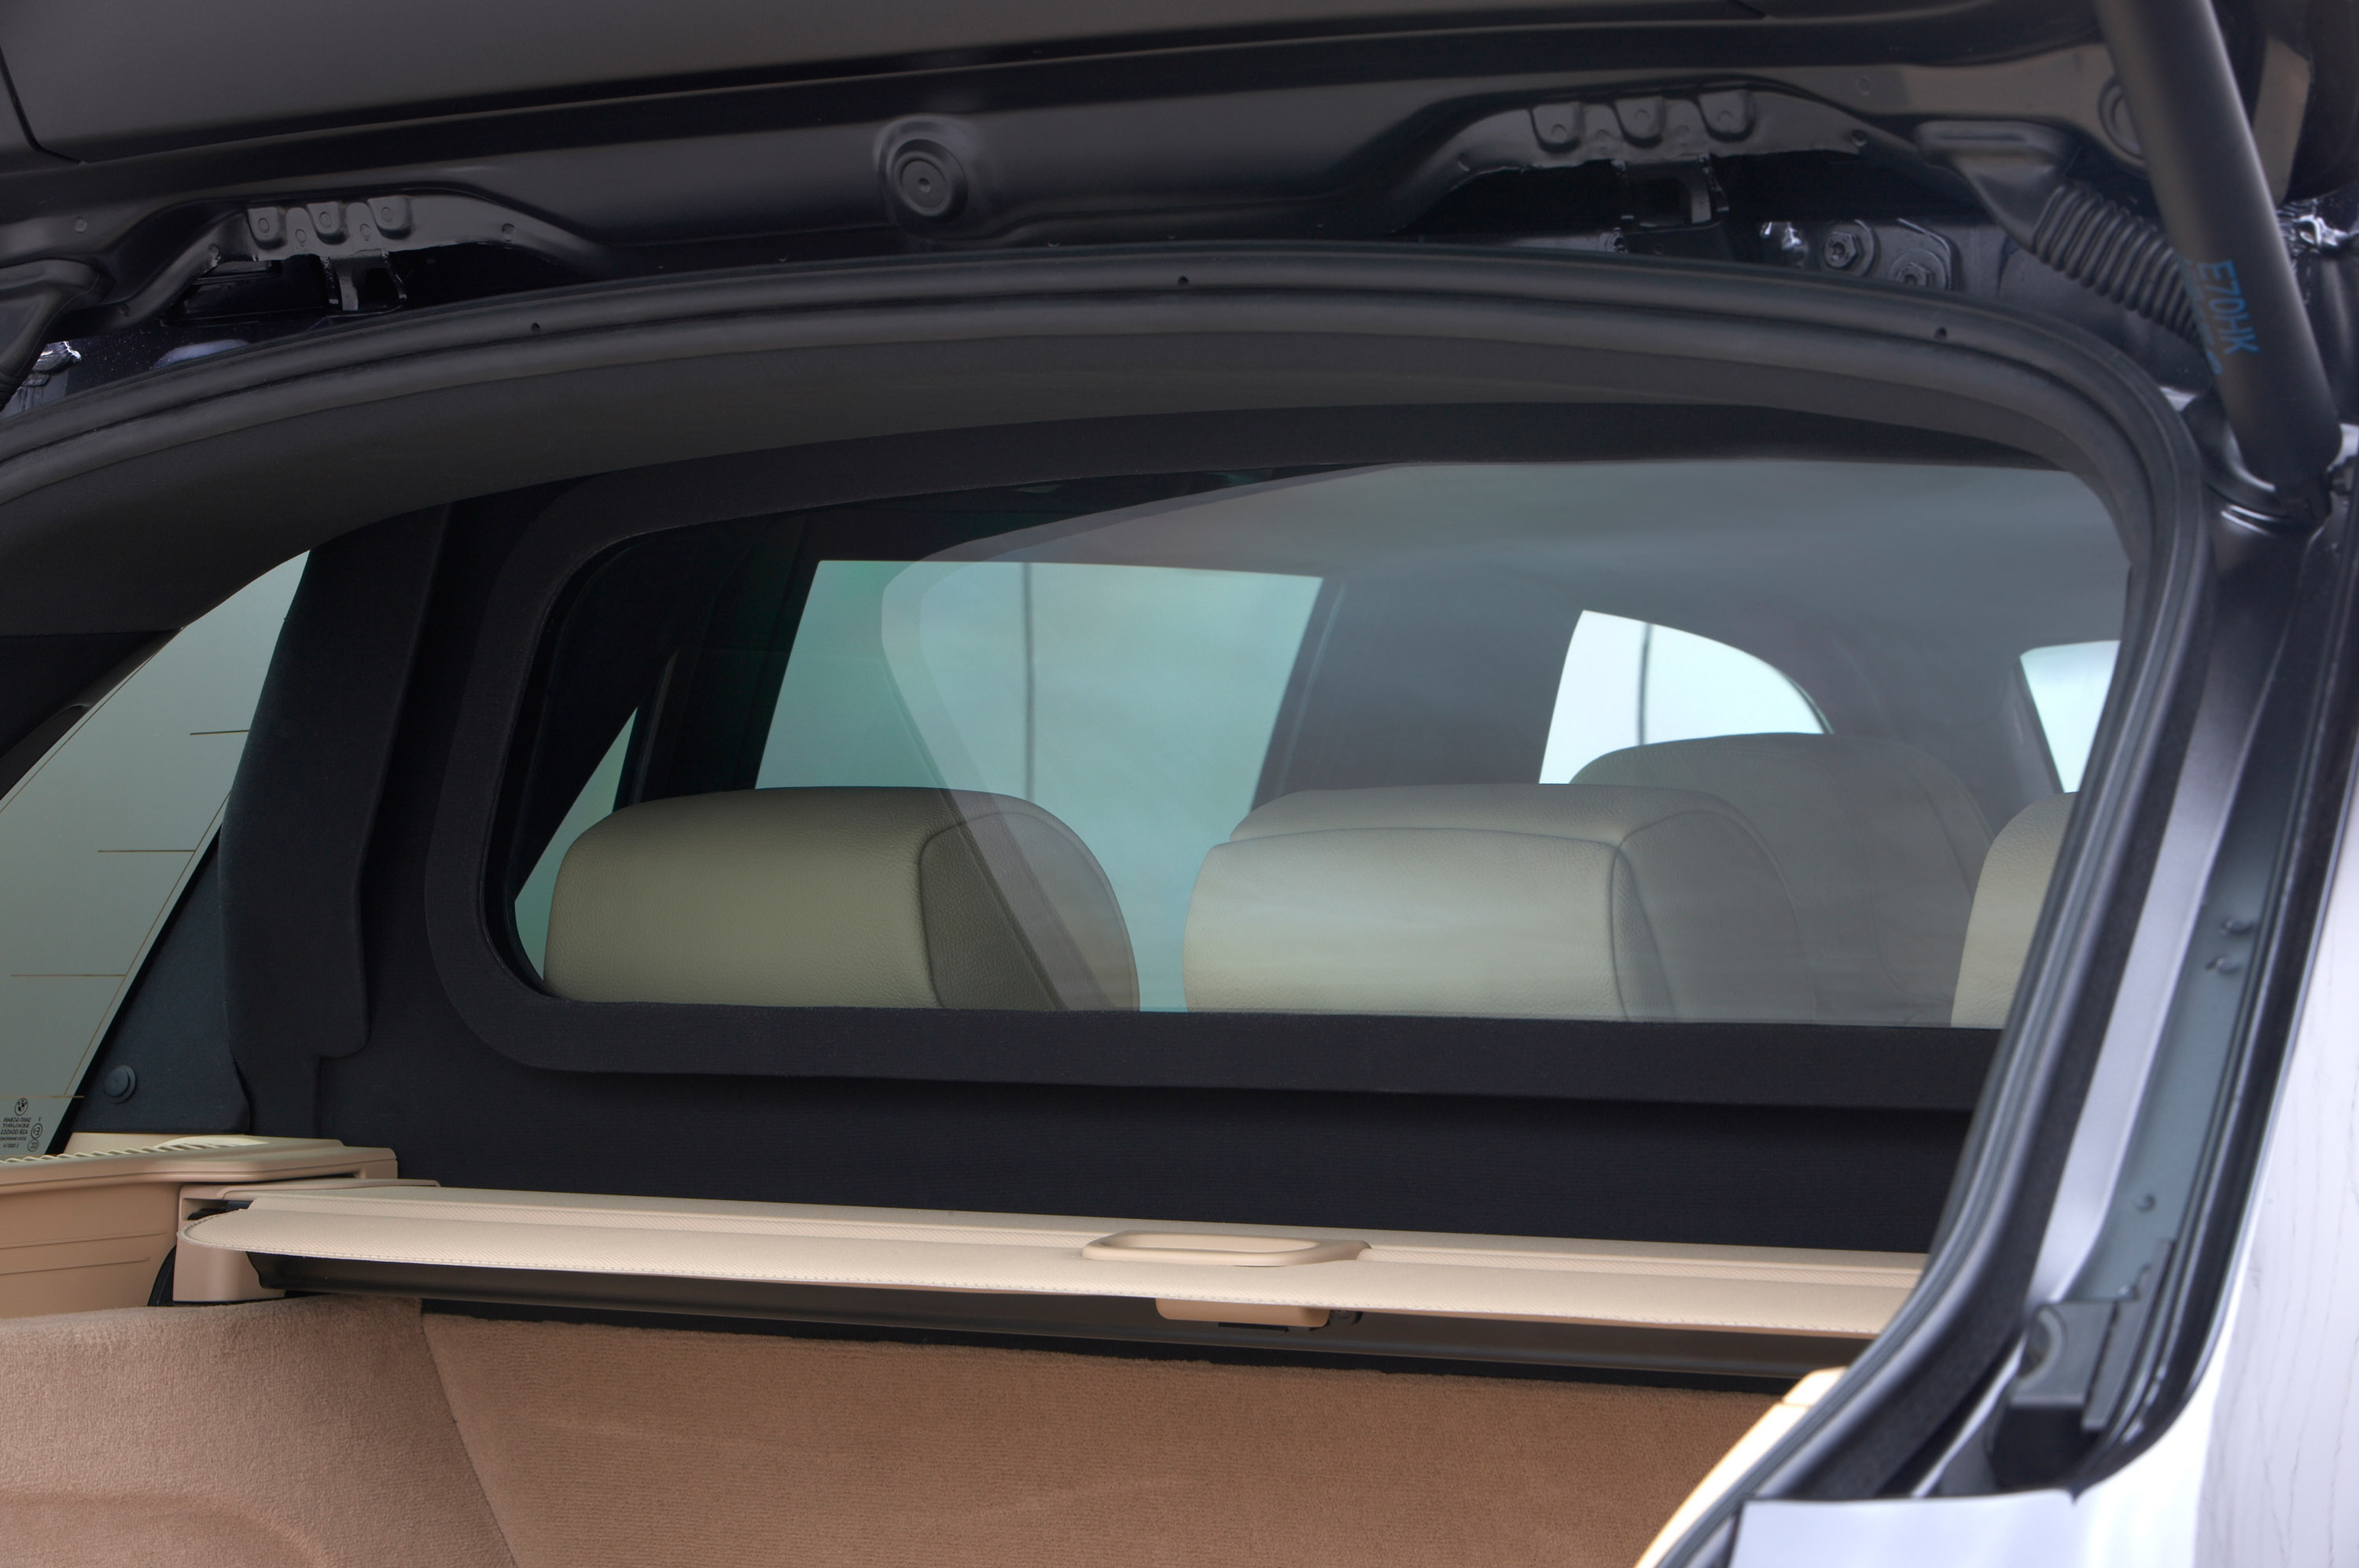 BMW X5 Security Plus - Picture 19217